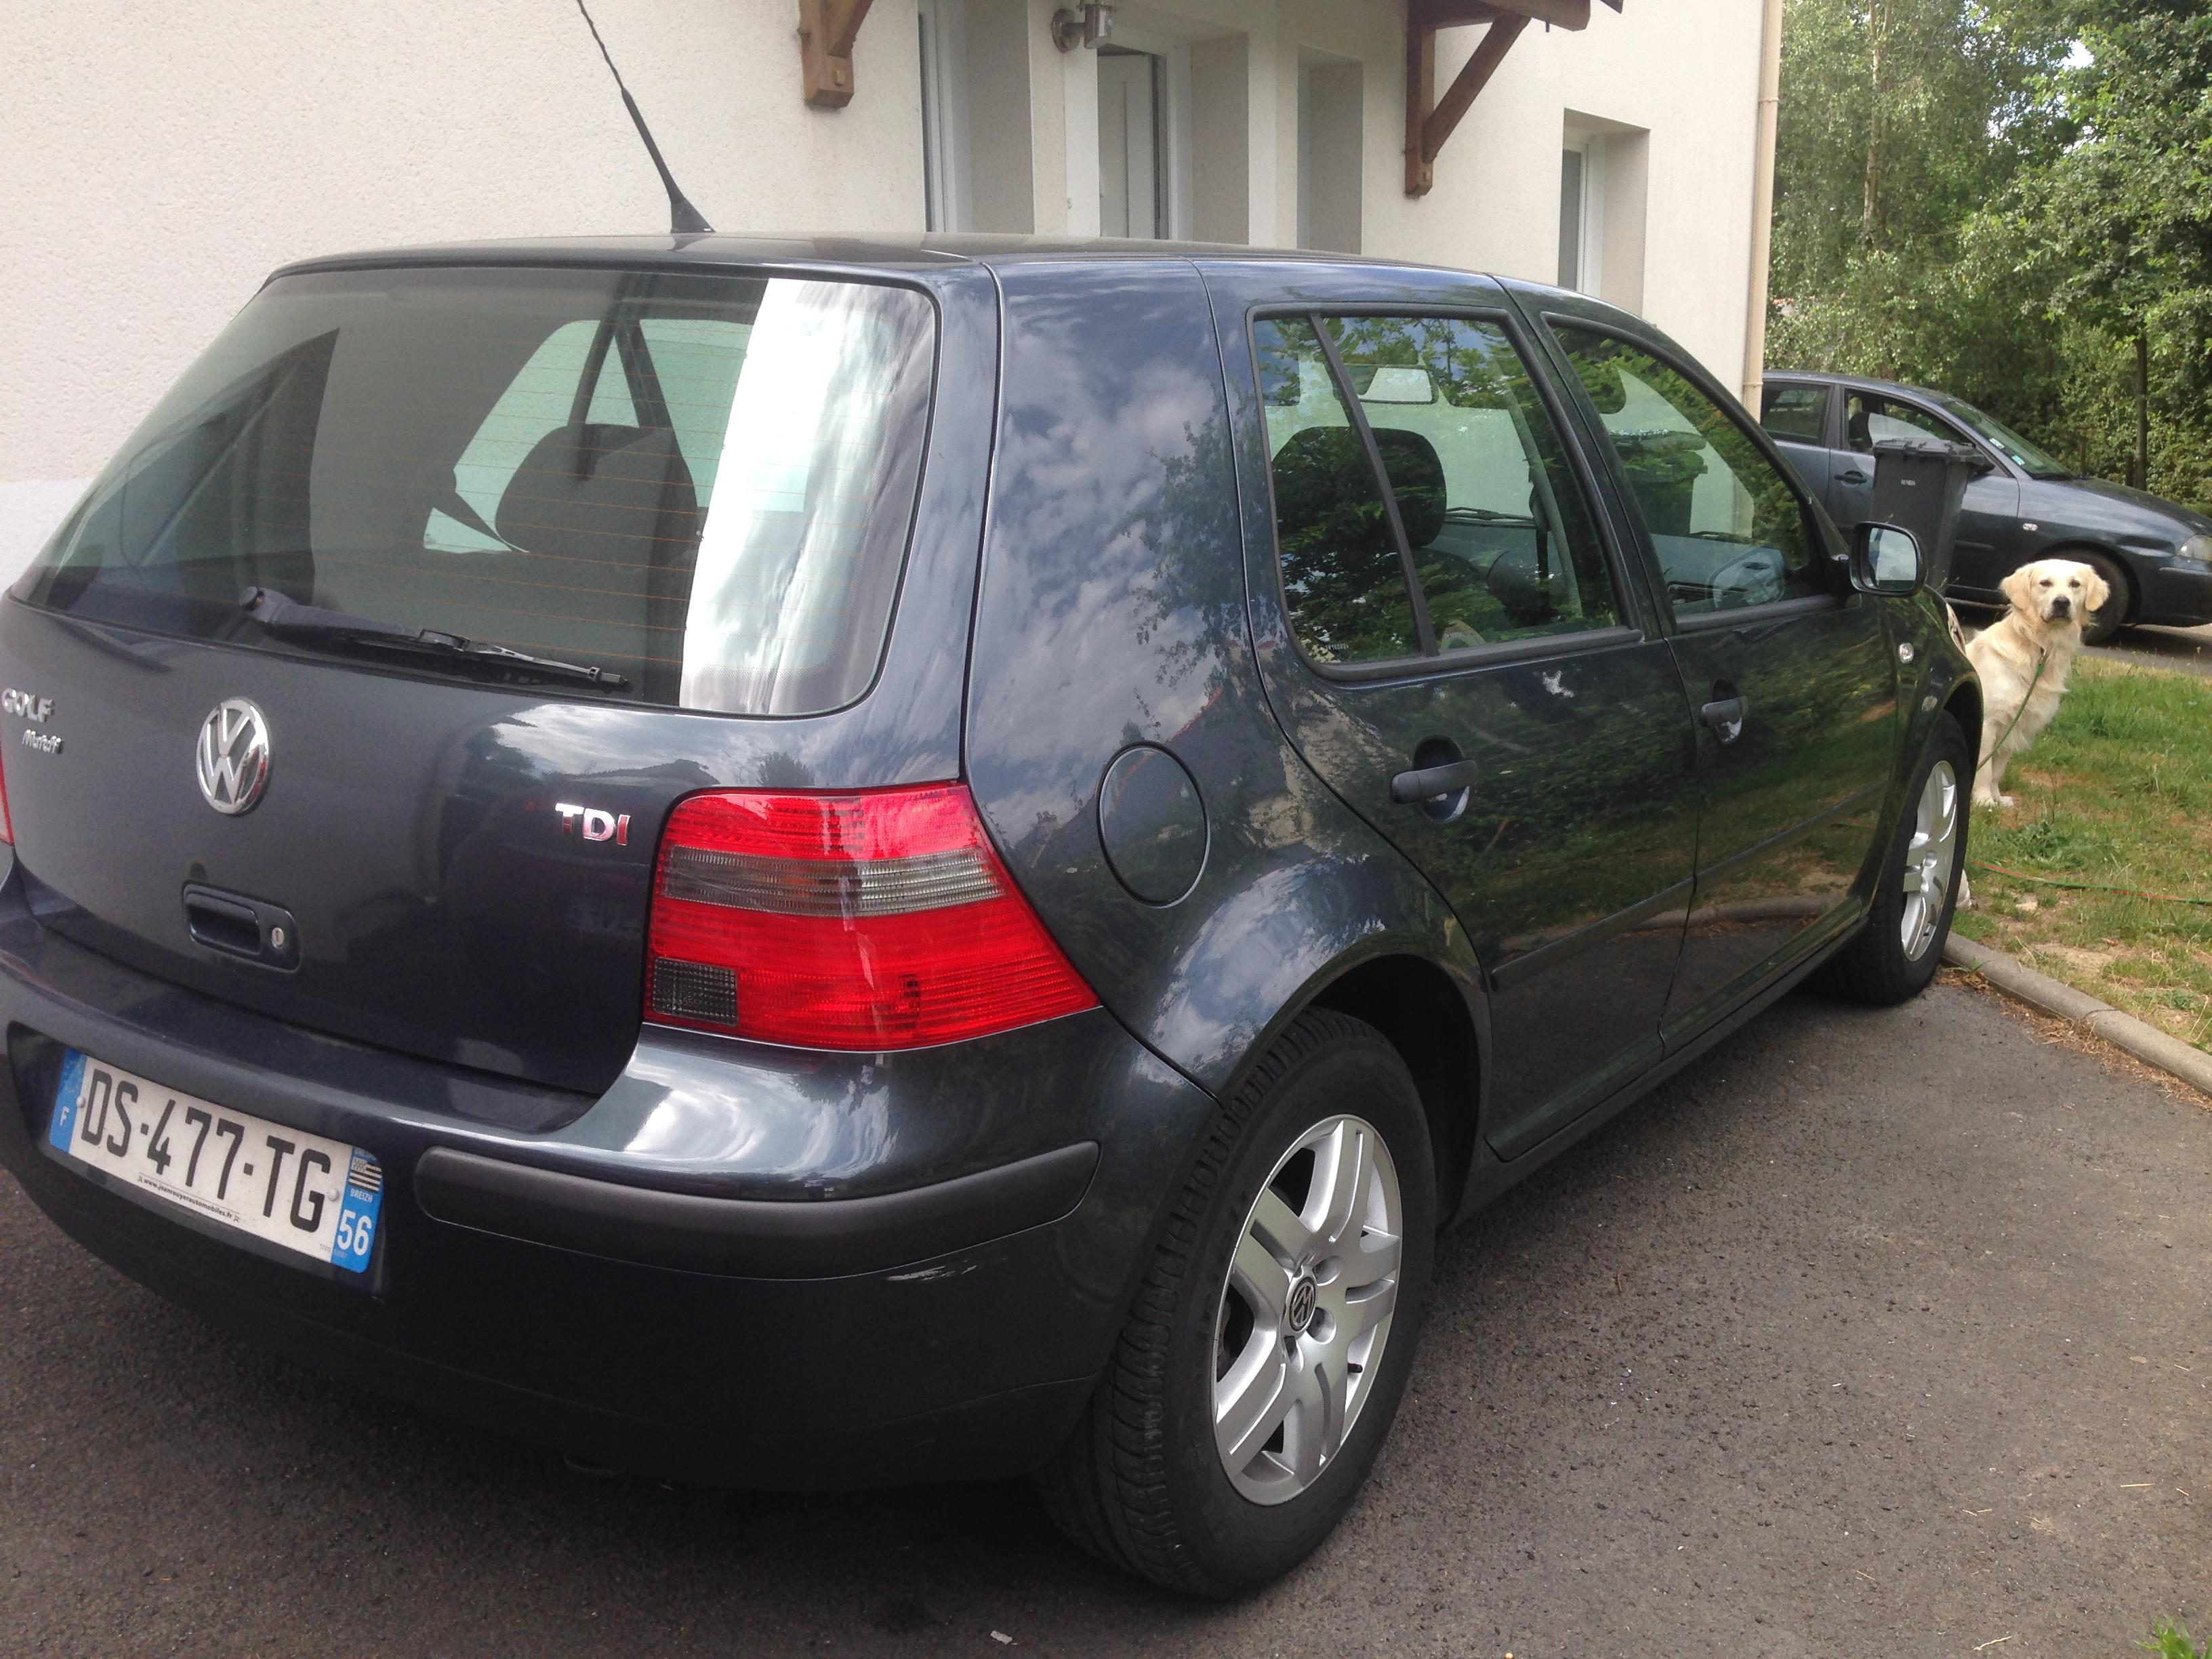 vw golf iv tdi 130 match 2003 garage des golf iv tdi 130 forum volkswagen golf iv. Black Bedroom Furniture Sets. Home Design Ideas